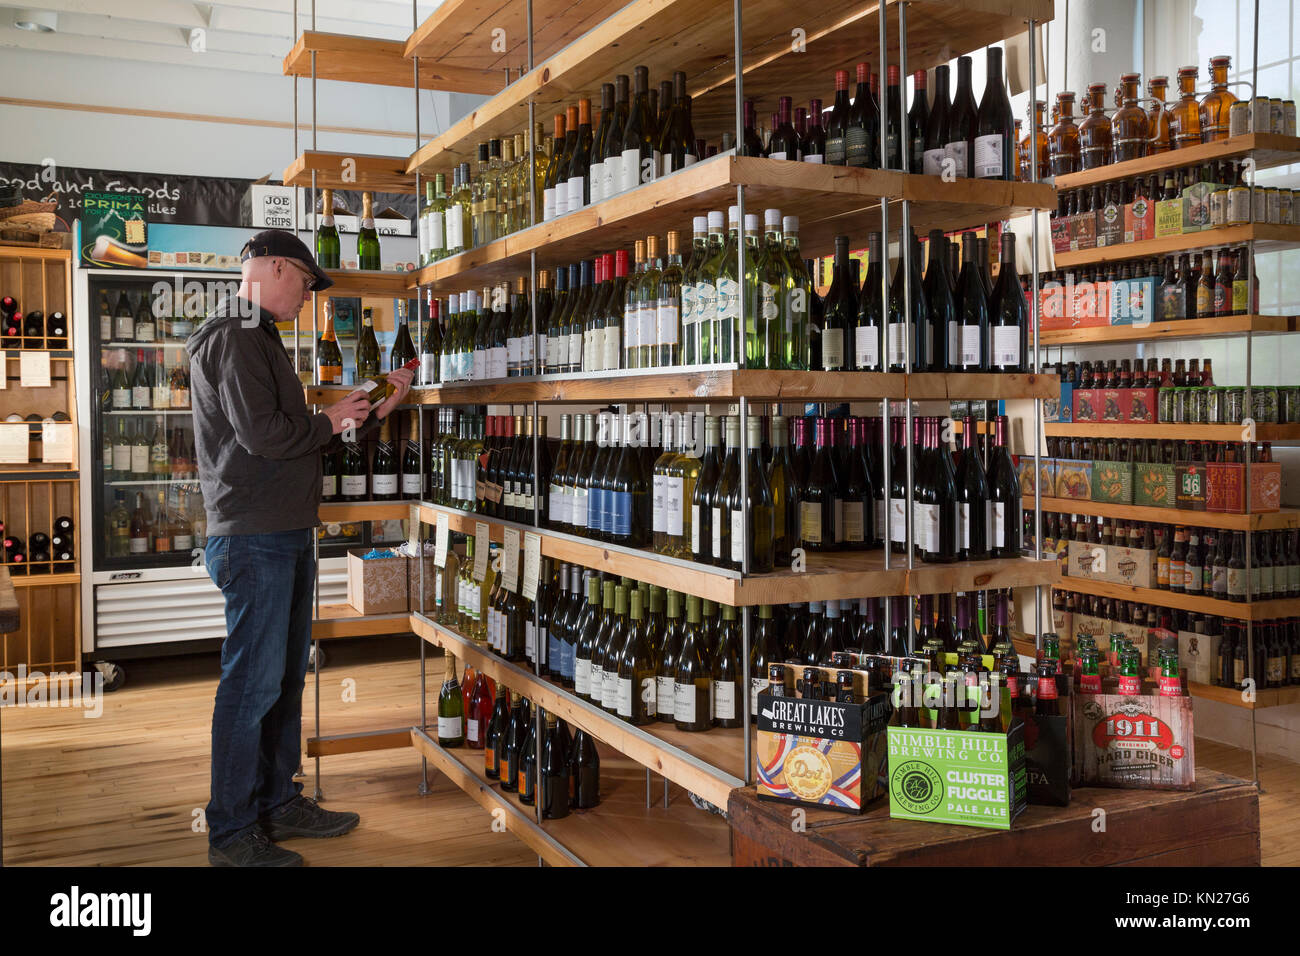 Man selecting Wine and Beer at small grocery, The Mill Market, Hawley, Pennsylvania, USA, - Stock Image